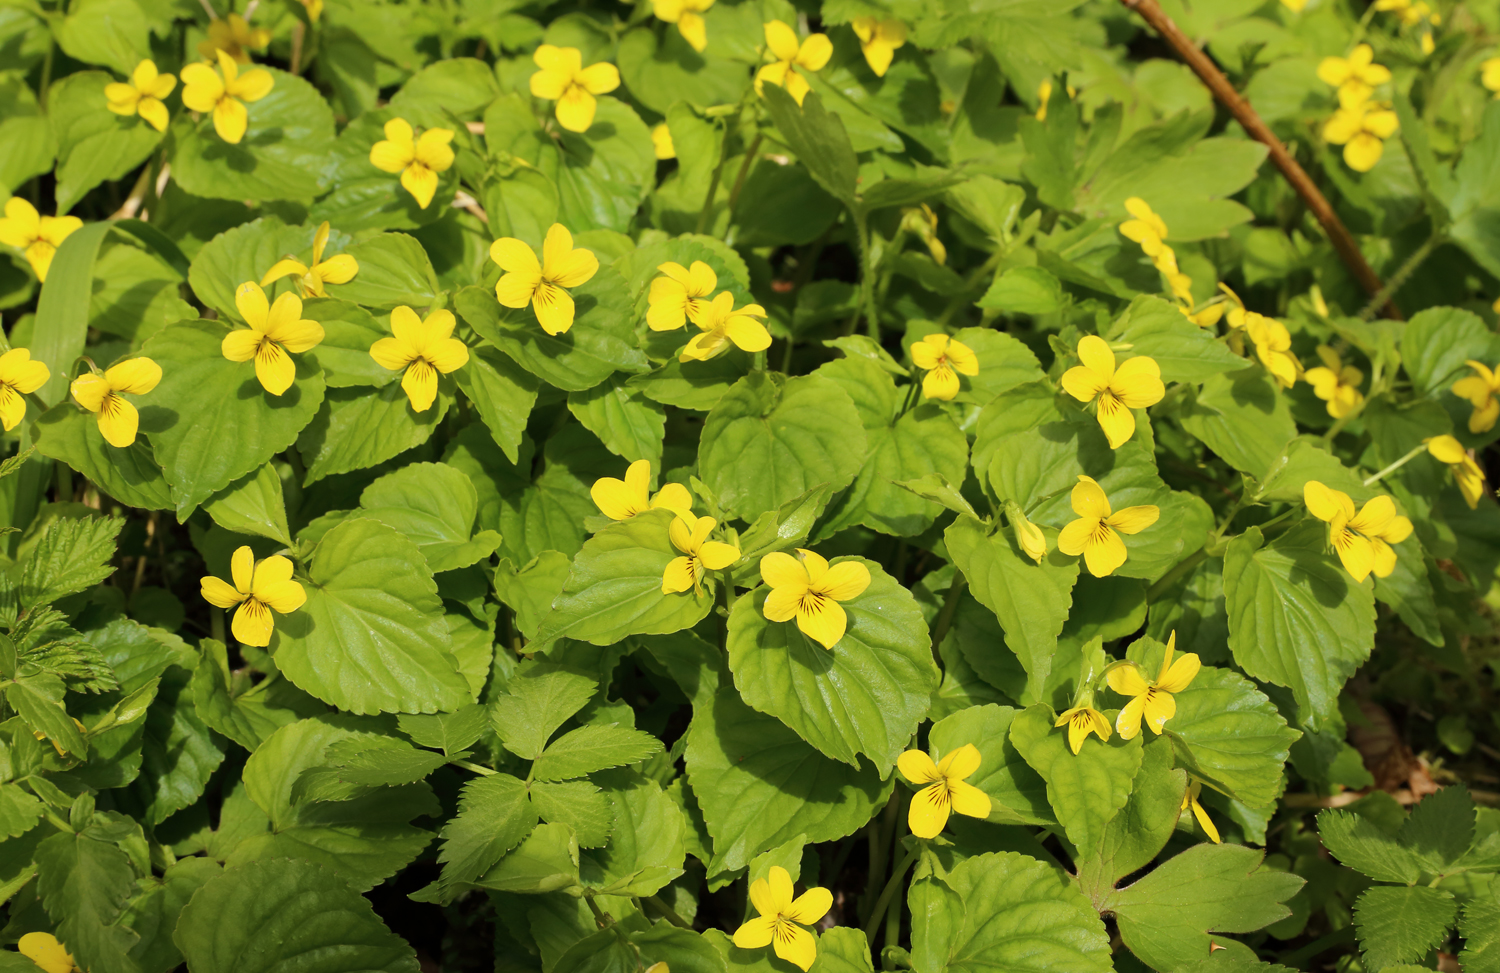 I often find yellow violets near nettle patches. This is another edible and medicinal plant!